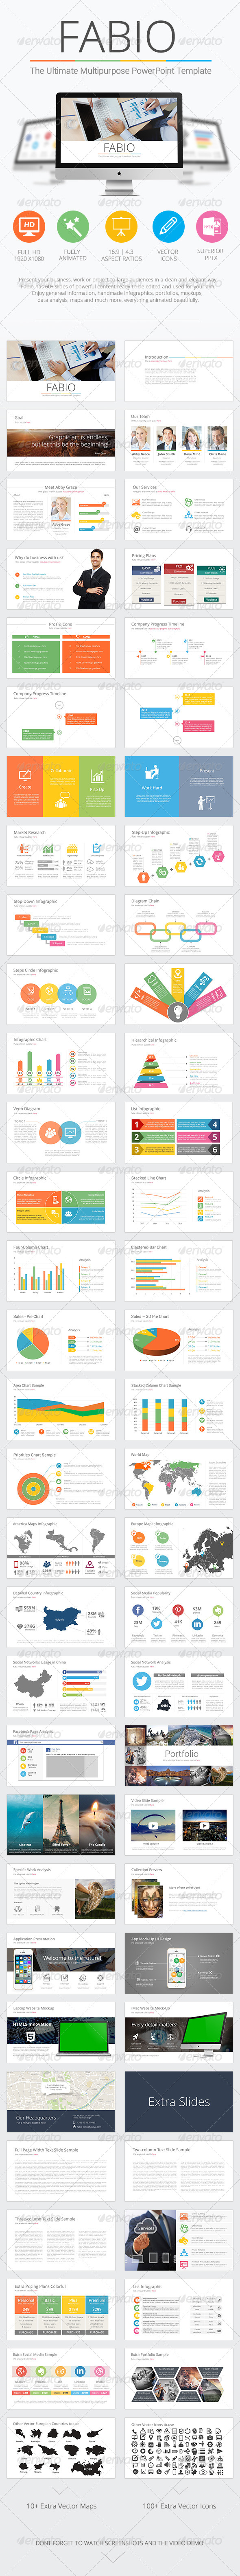 GraphicRiver Fabio Ultimate Multipurpose PowerPoint Template 8553167